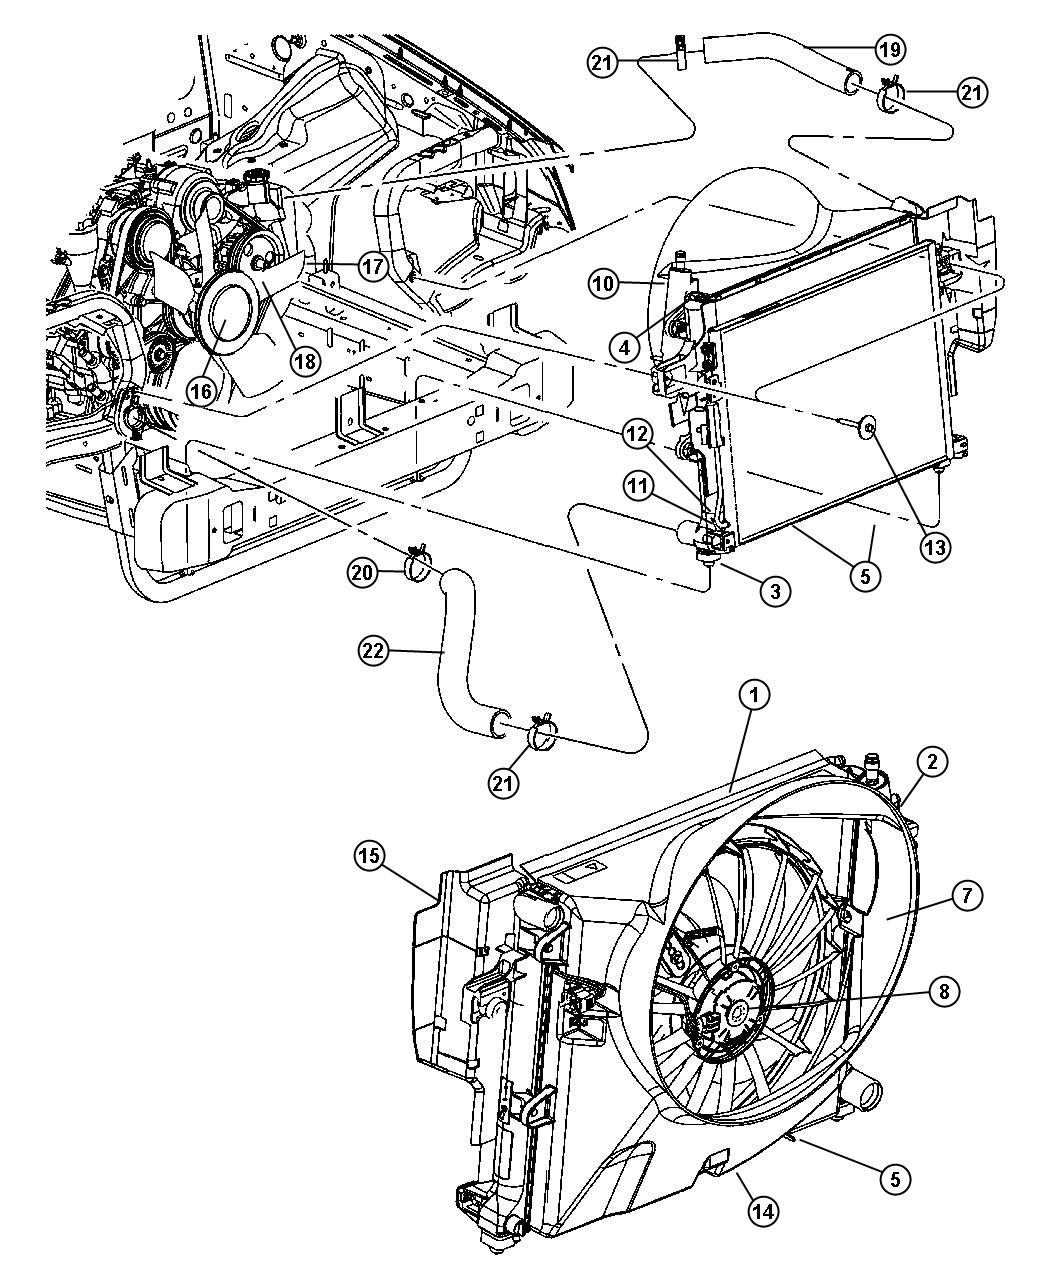 Chrysler 200 Shroud Fan Anaul Electric Manual